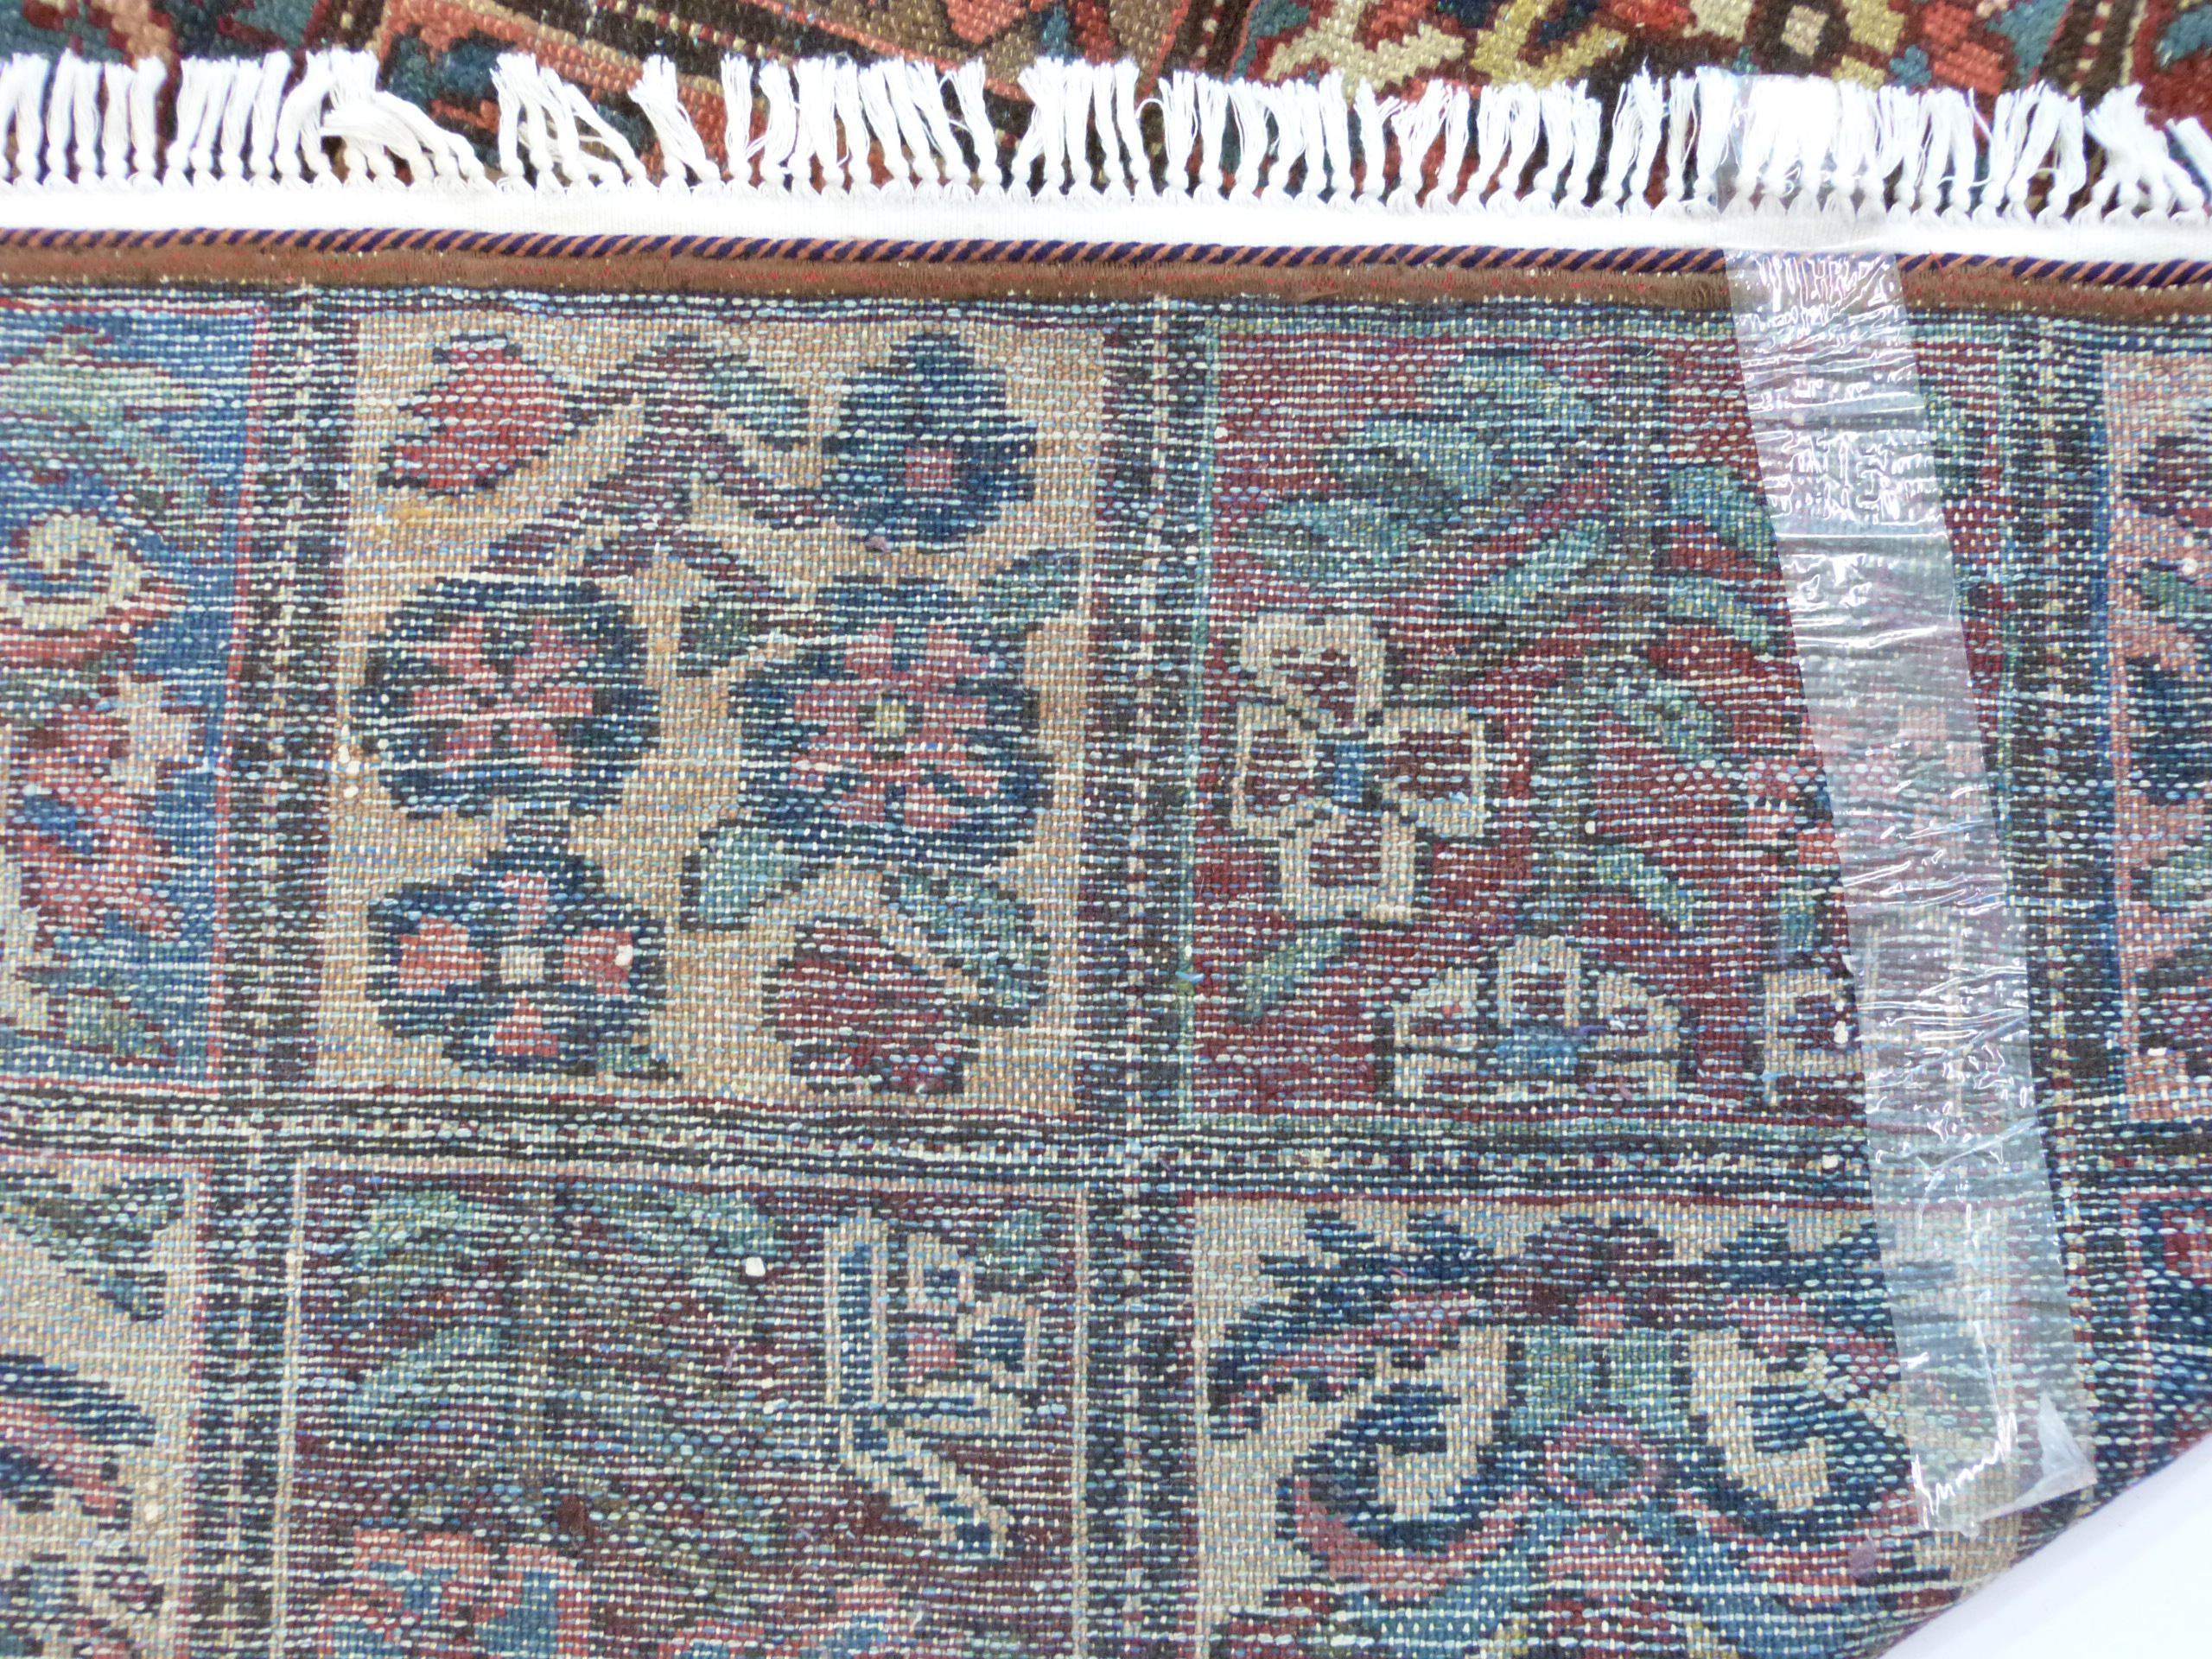 Vintage Persian Baktia Carpet, with all-over panelled design 260cm x 167cm approximately - Image 7 of 7